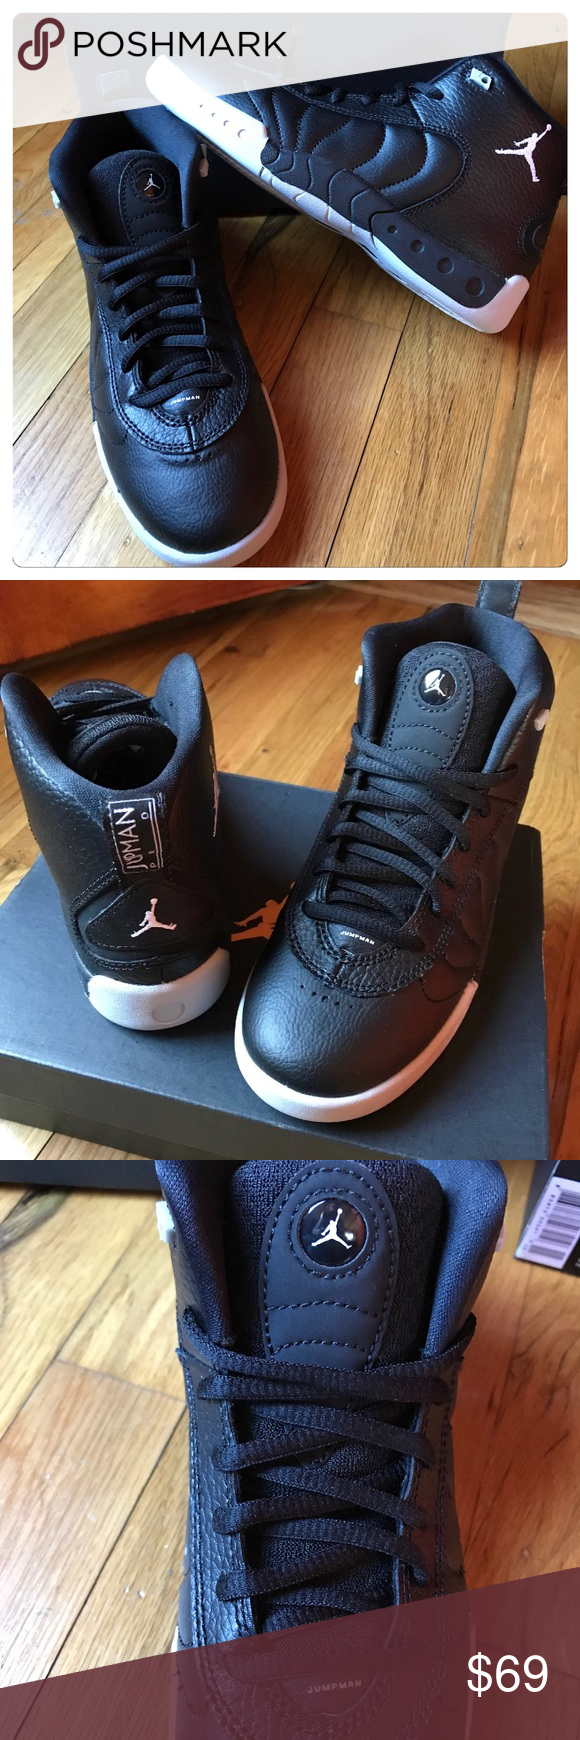 best service 353e3 4e7f0 Youth Jordan JumpMan Pro new New in Box Ships Fast Happy to ...